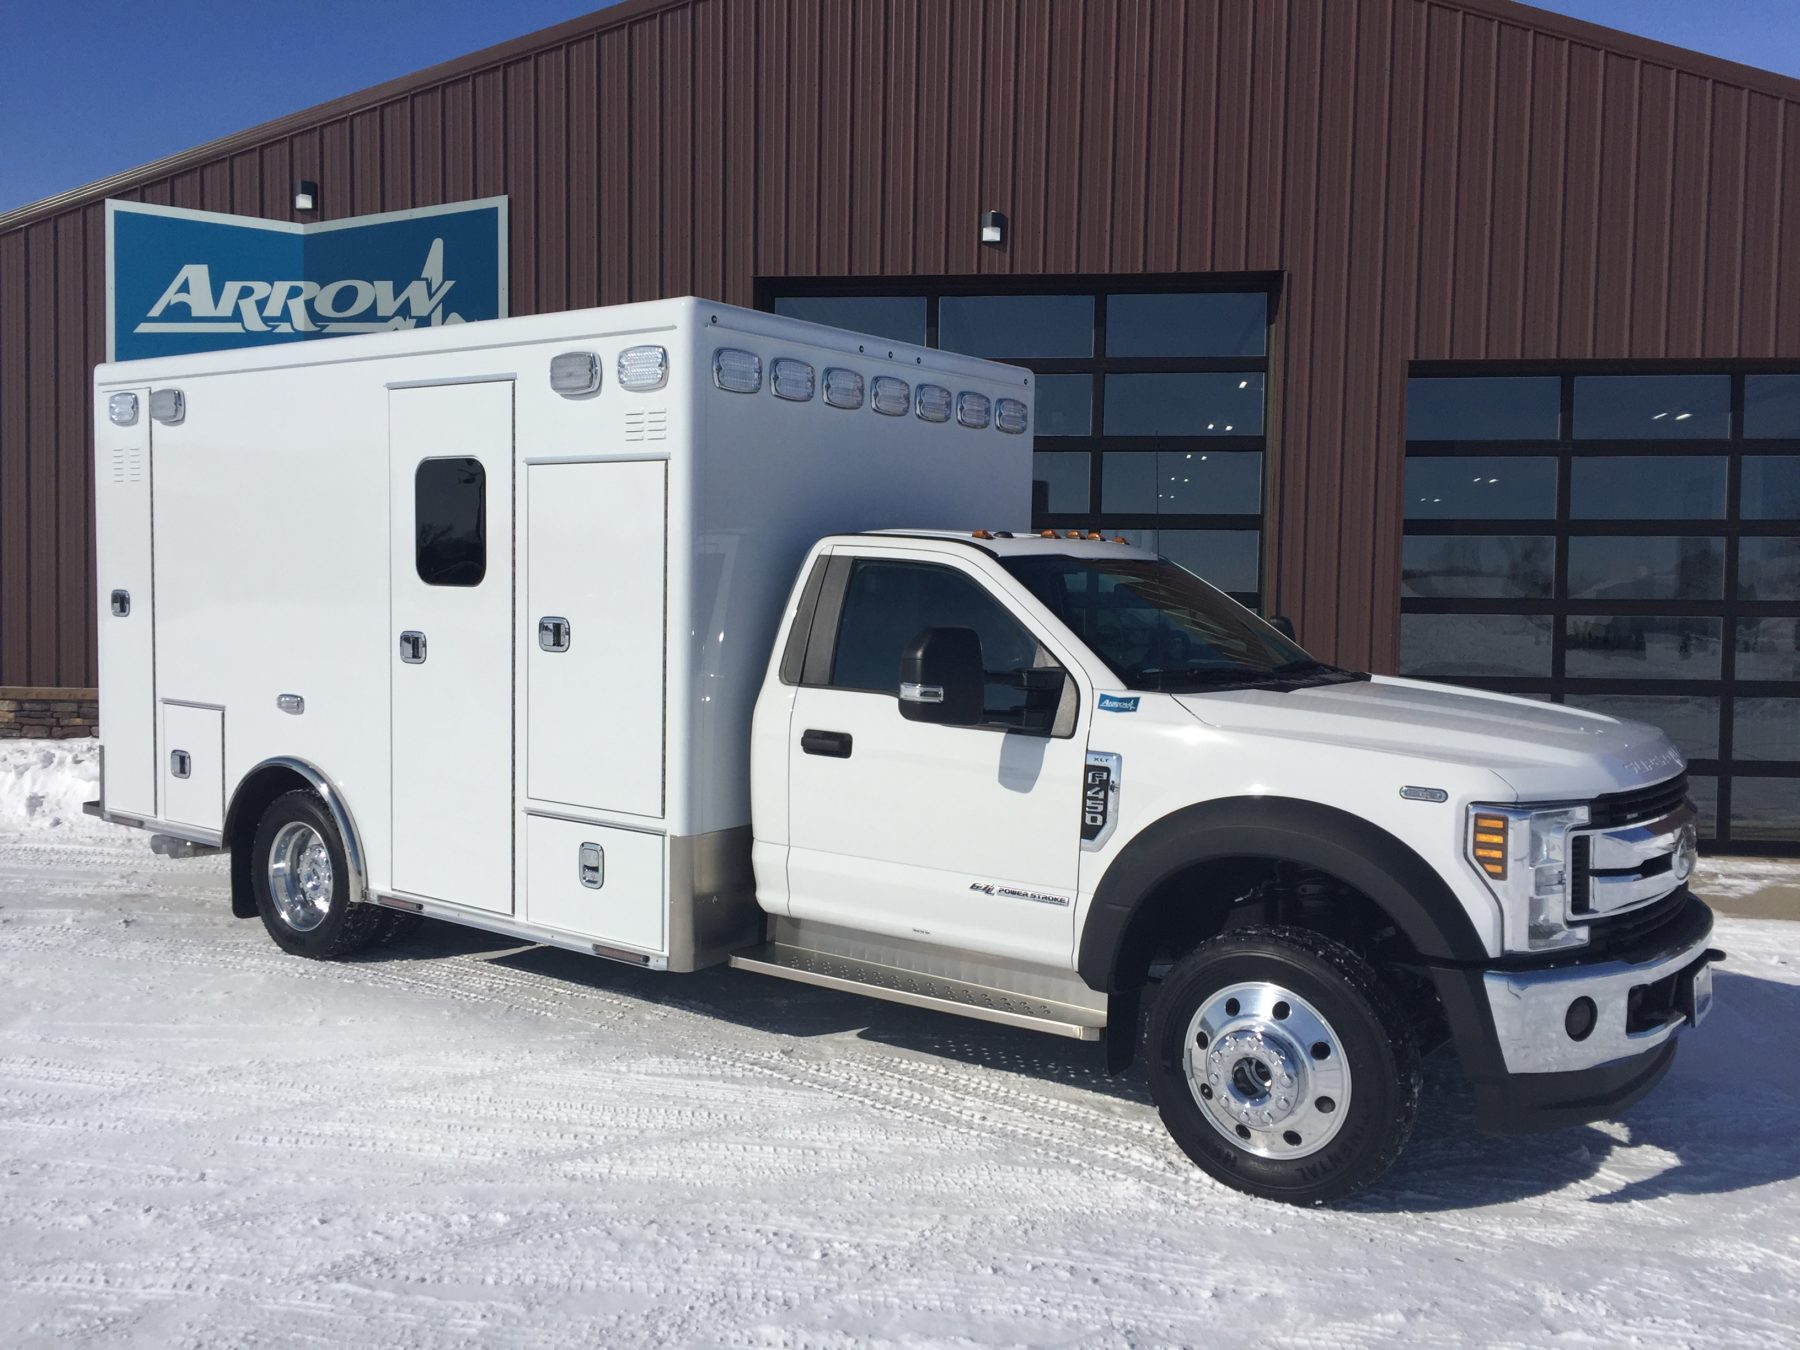 2019 Ford F450 4x4 Heavy Duty Ambulance For Sale – Picture 3